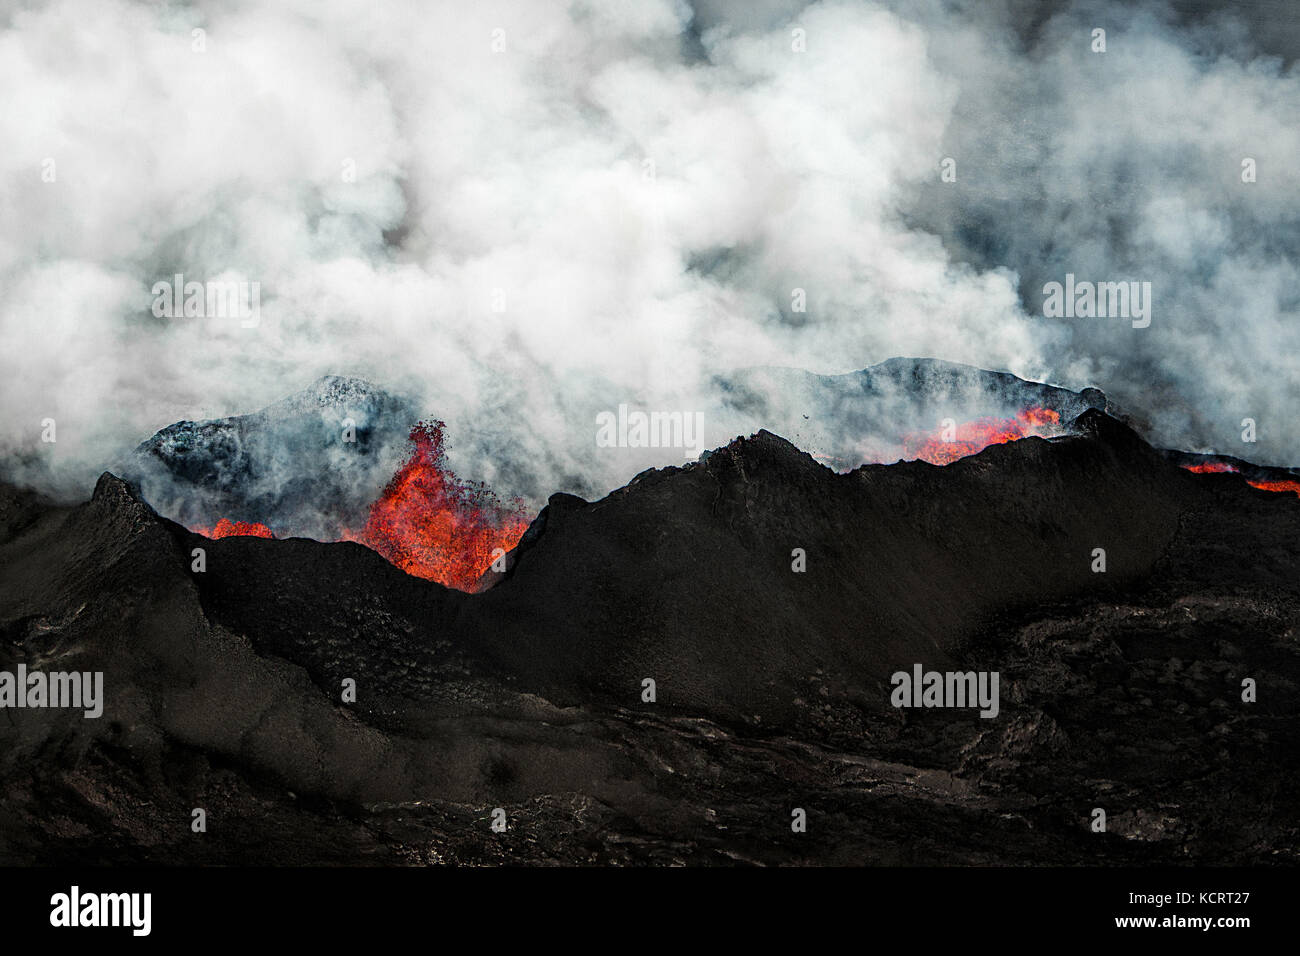 Holuhraun fissure eruption near Bardabunga volcano spewing lava in Iceland - Stock Image